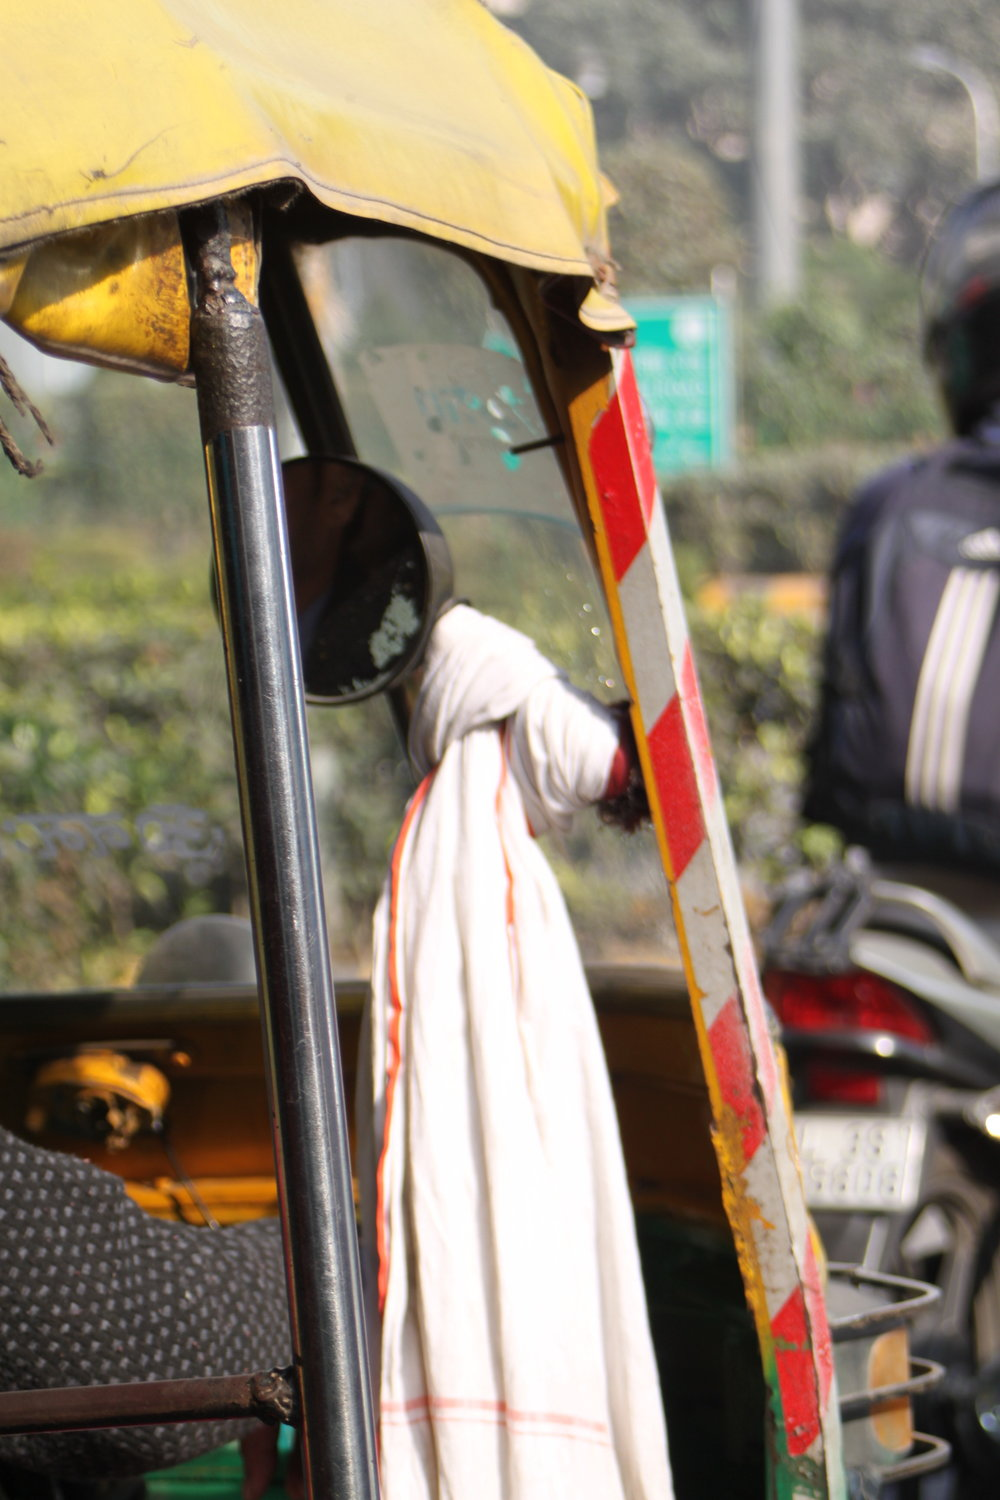 ANOTHER AUTO RICKSHAW (DETAIL)